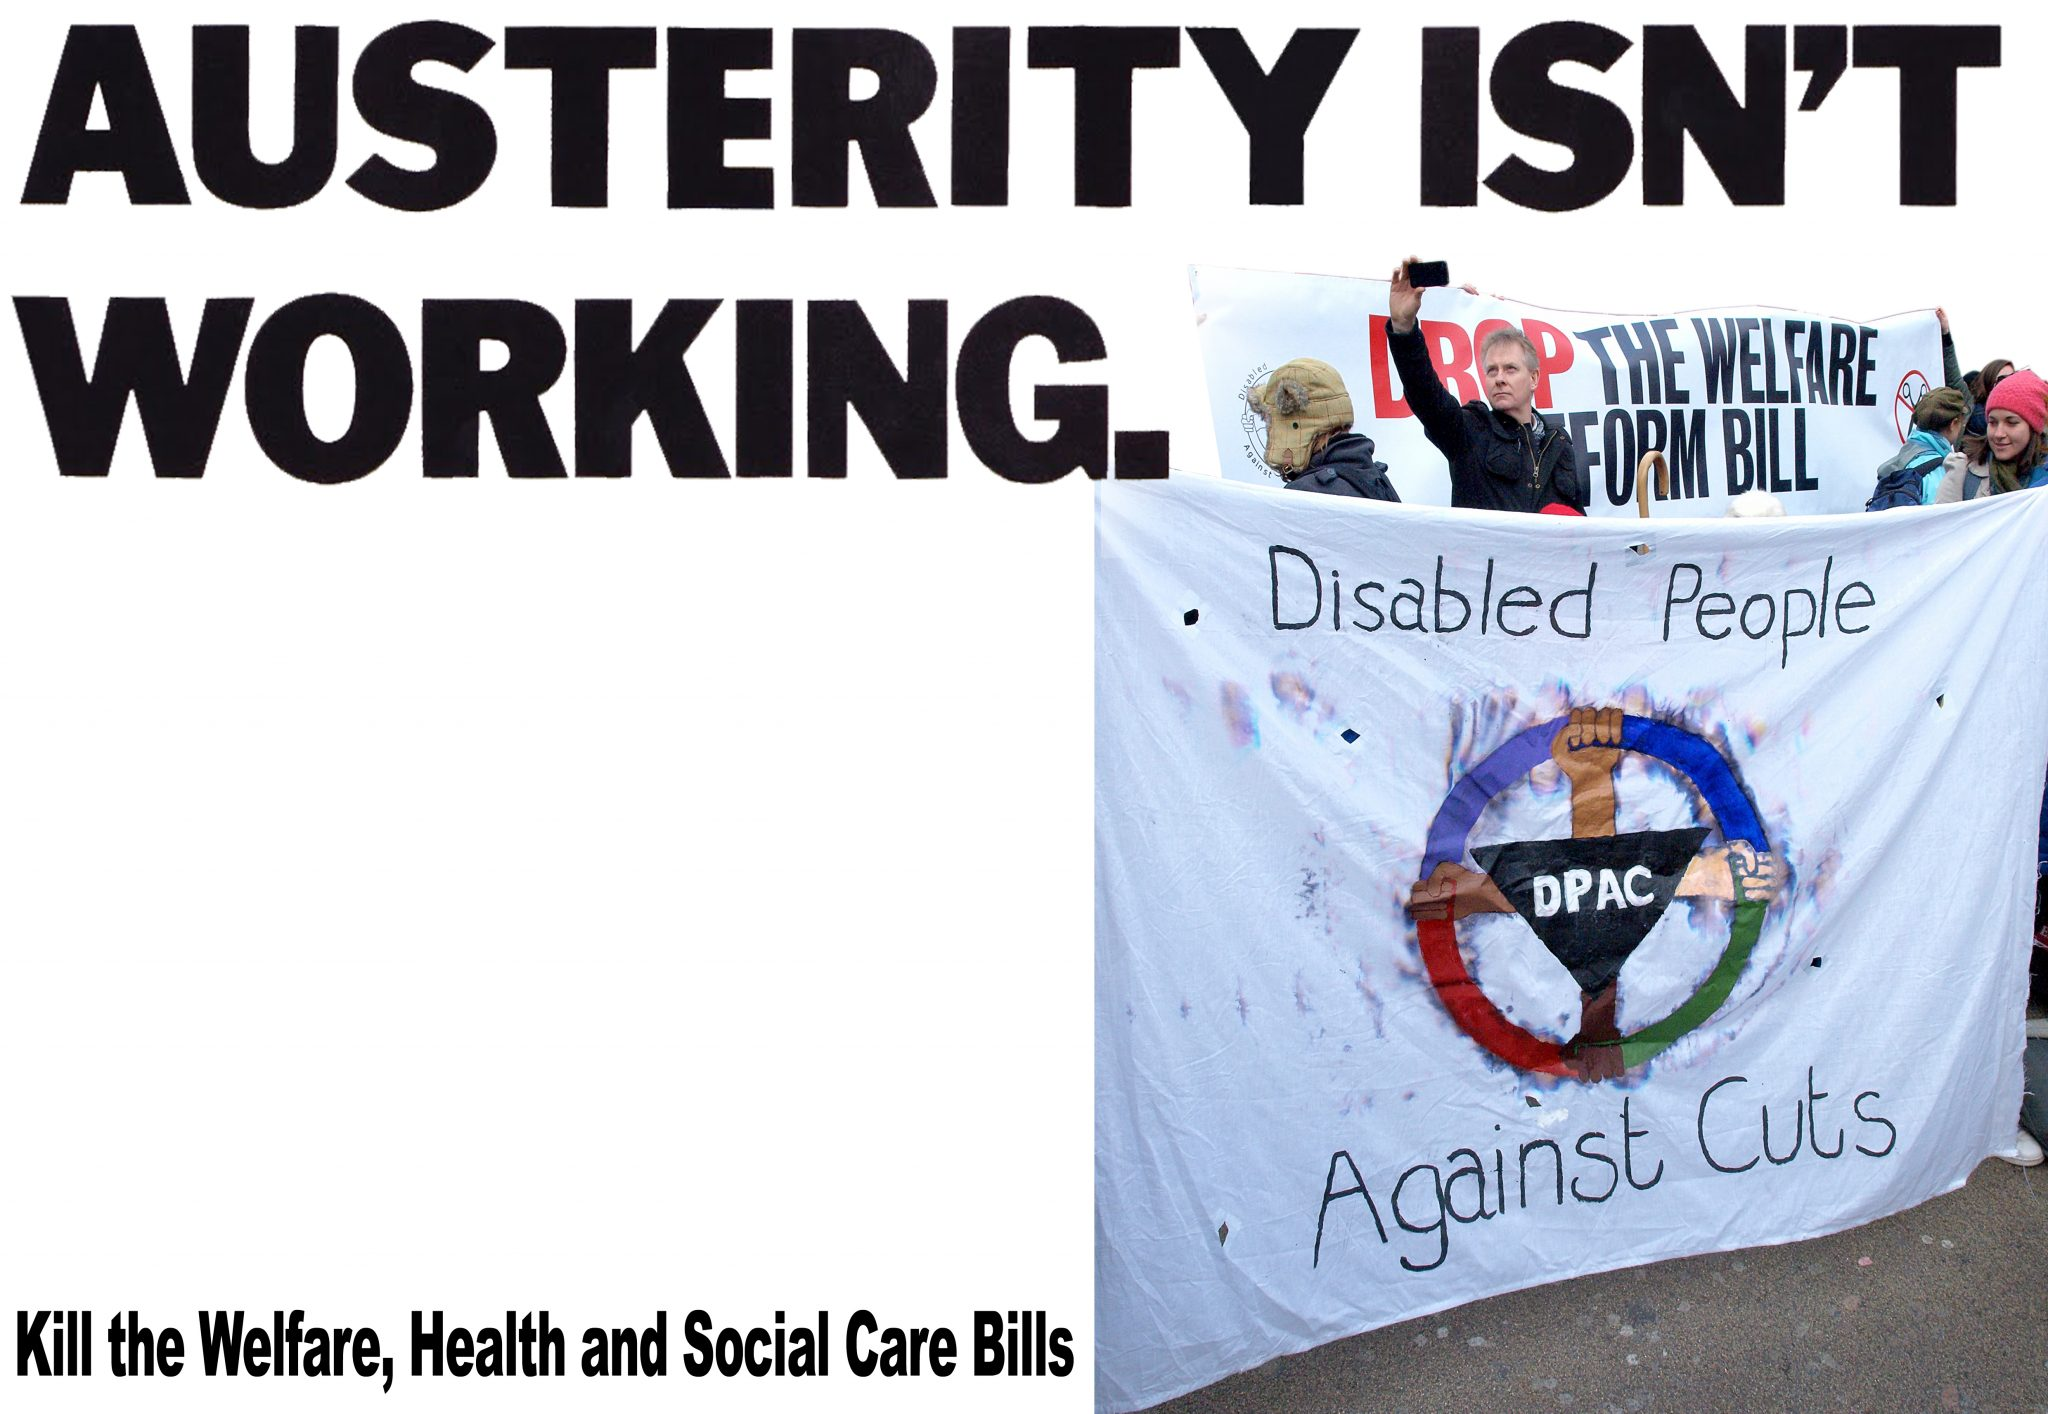 Poster :Austerity isnt working with DPAC disabled people against cuts banner with Drop the Welfare Reform Bill behind it. Kill the Welfare, Health and Social Care Bills